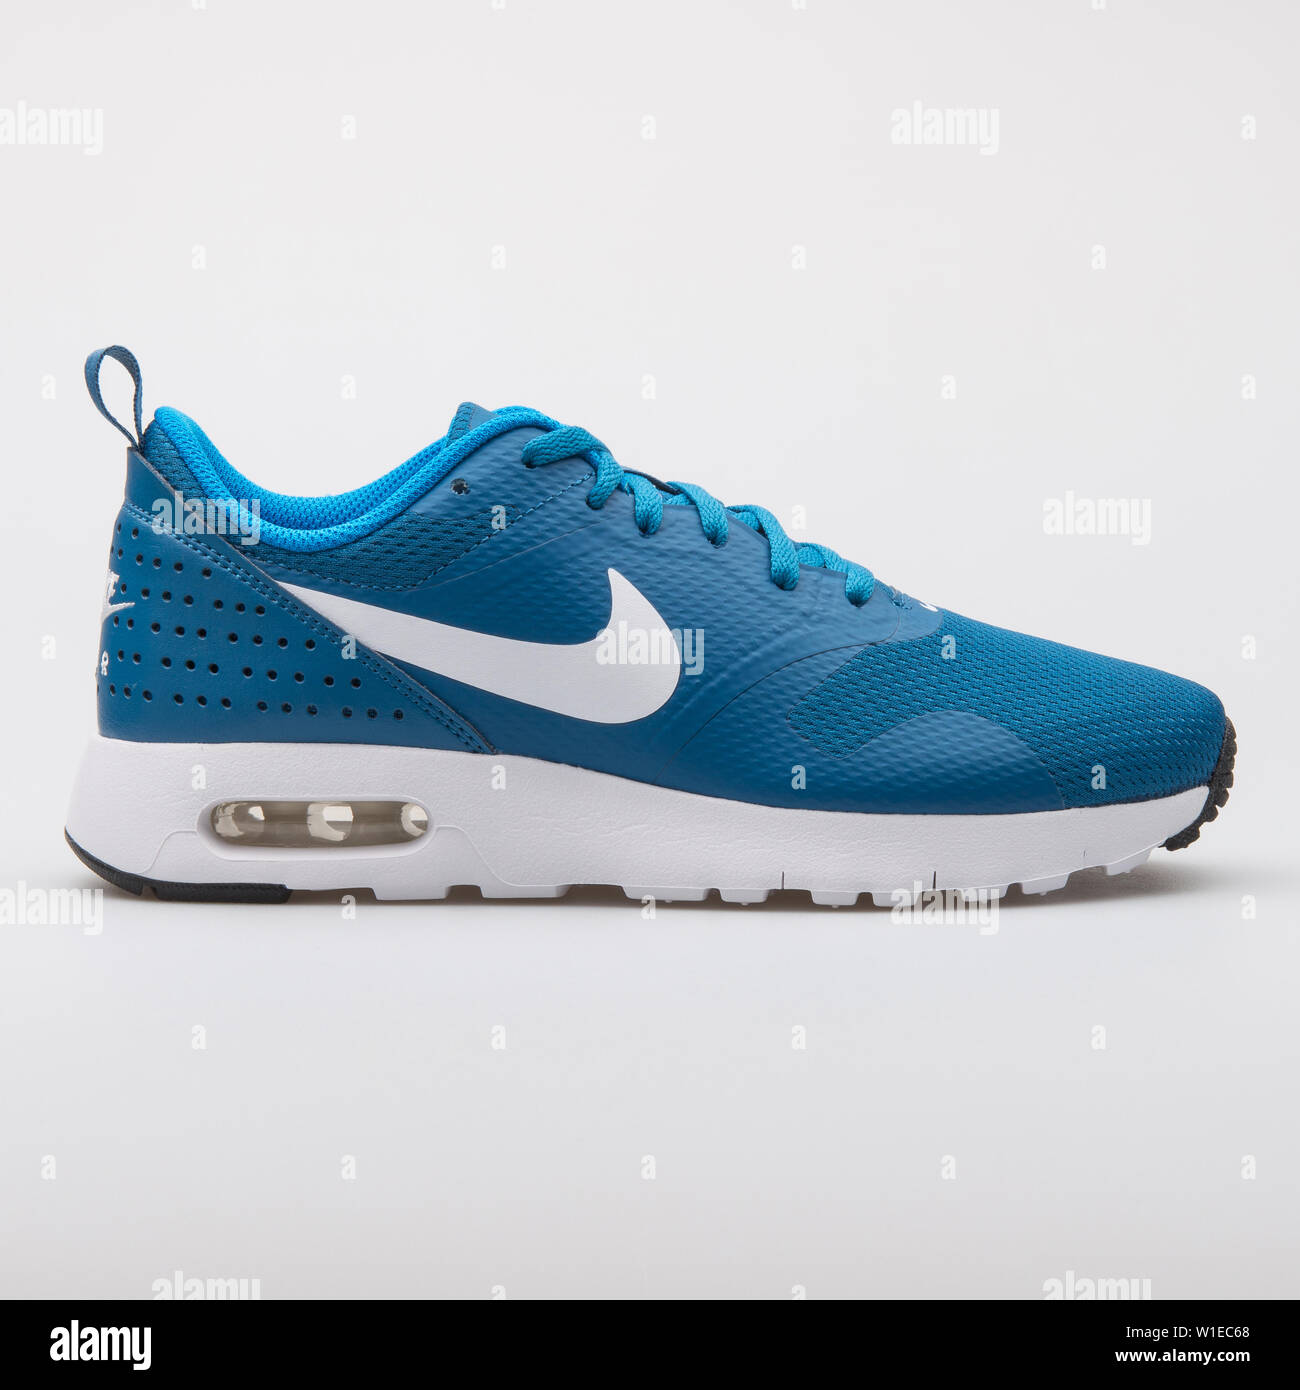 the latest 8aee5 3ac87 VIENNA, AUSTRIA - AUGUST 7, 2017: Nike Air Max Tavas blue ...